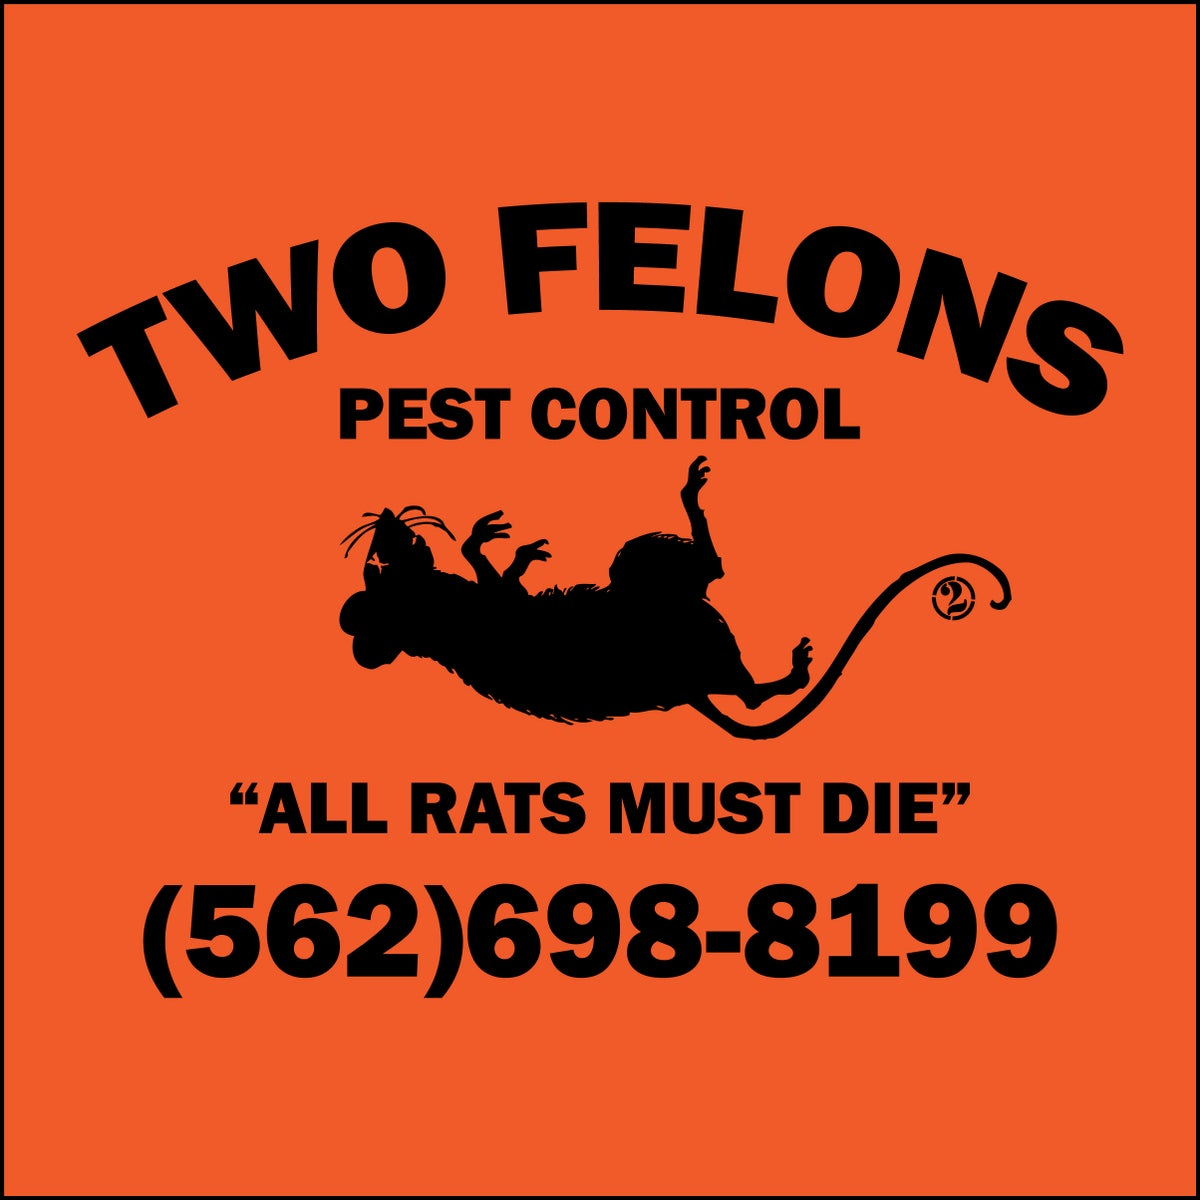 """Two Felons """"Pest Control"""" (safety)"""